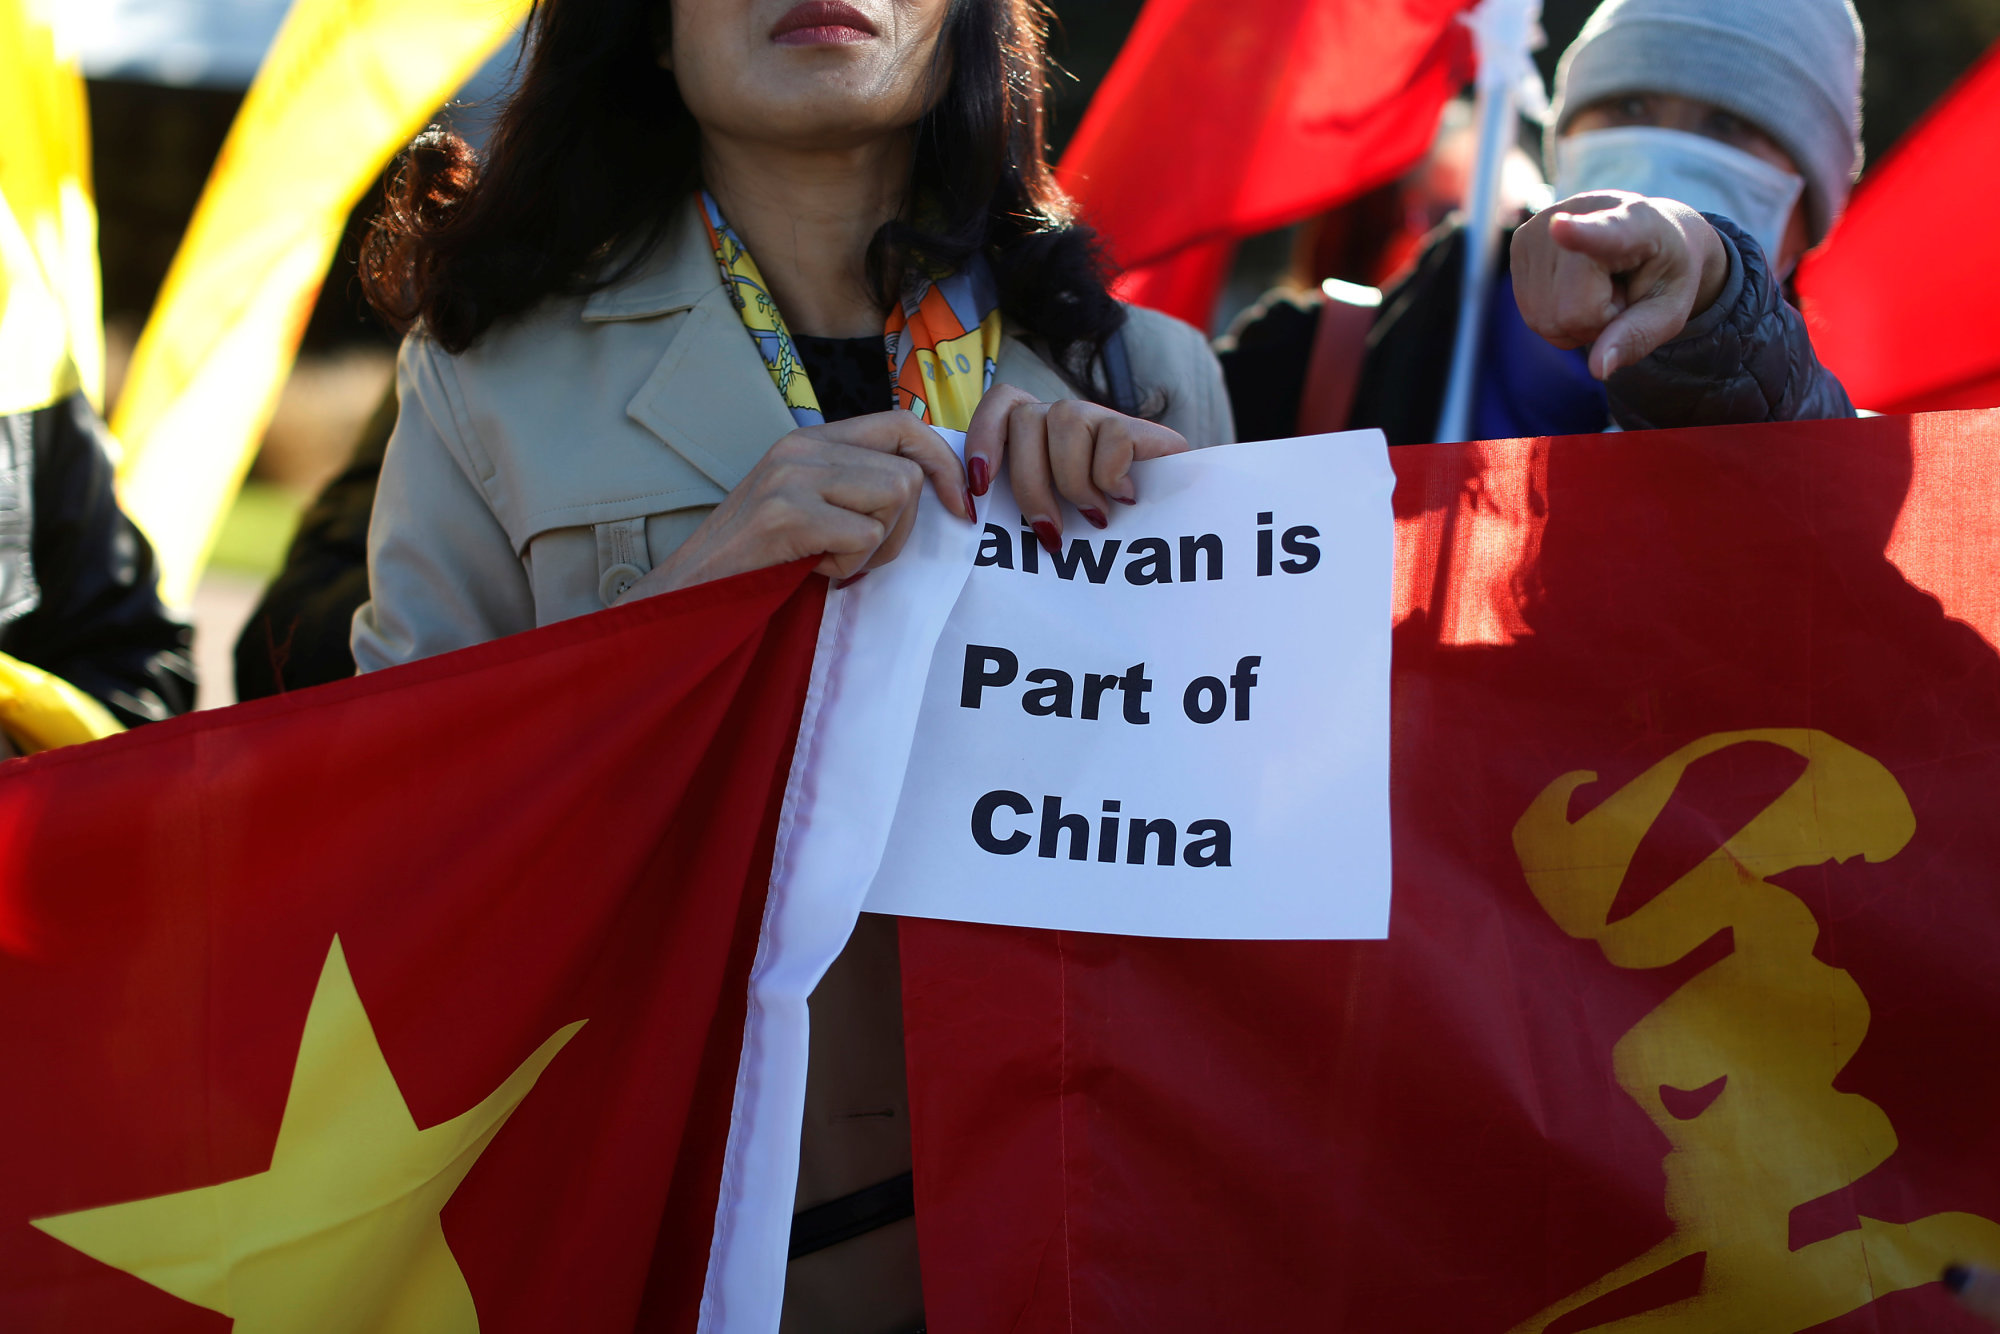 A demonstrator holds a sign in support of China during Taiwanese President Tsai Ing-wen's stopover after her visit to Latin America, in Burlingame, California, on Saturday.   REUTERS